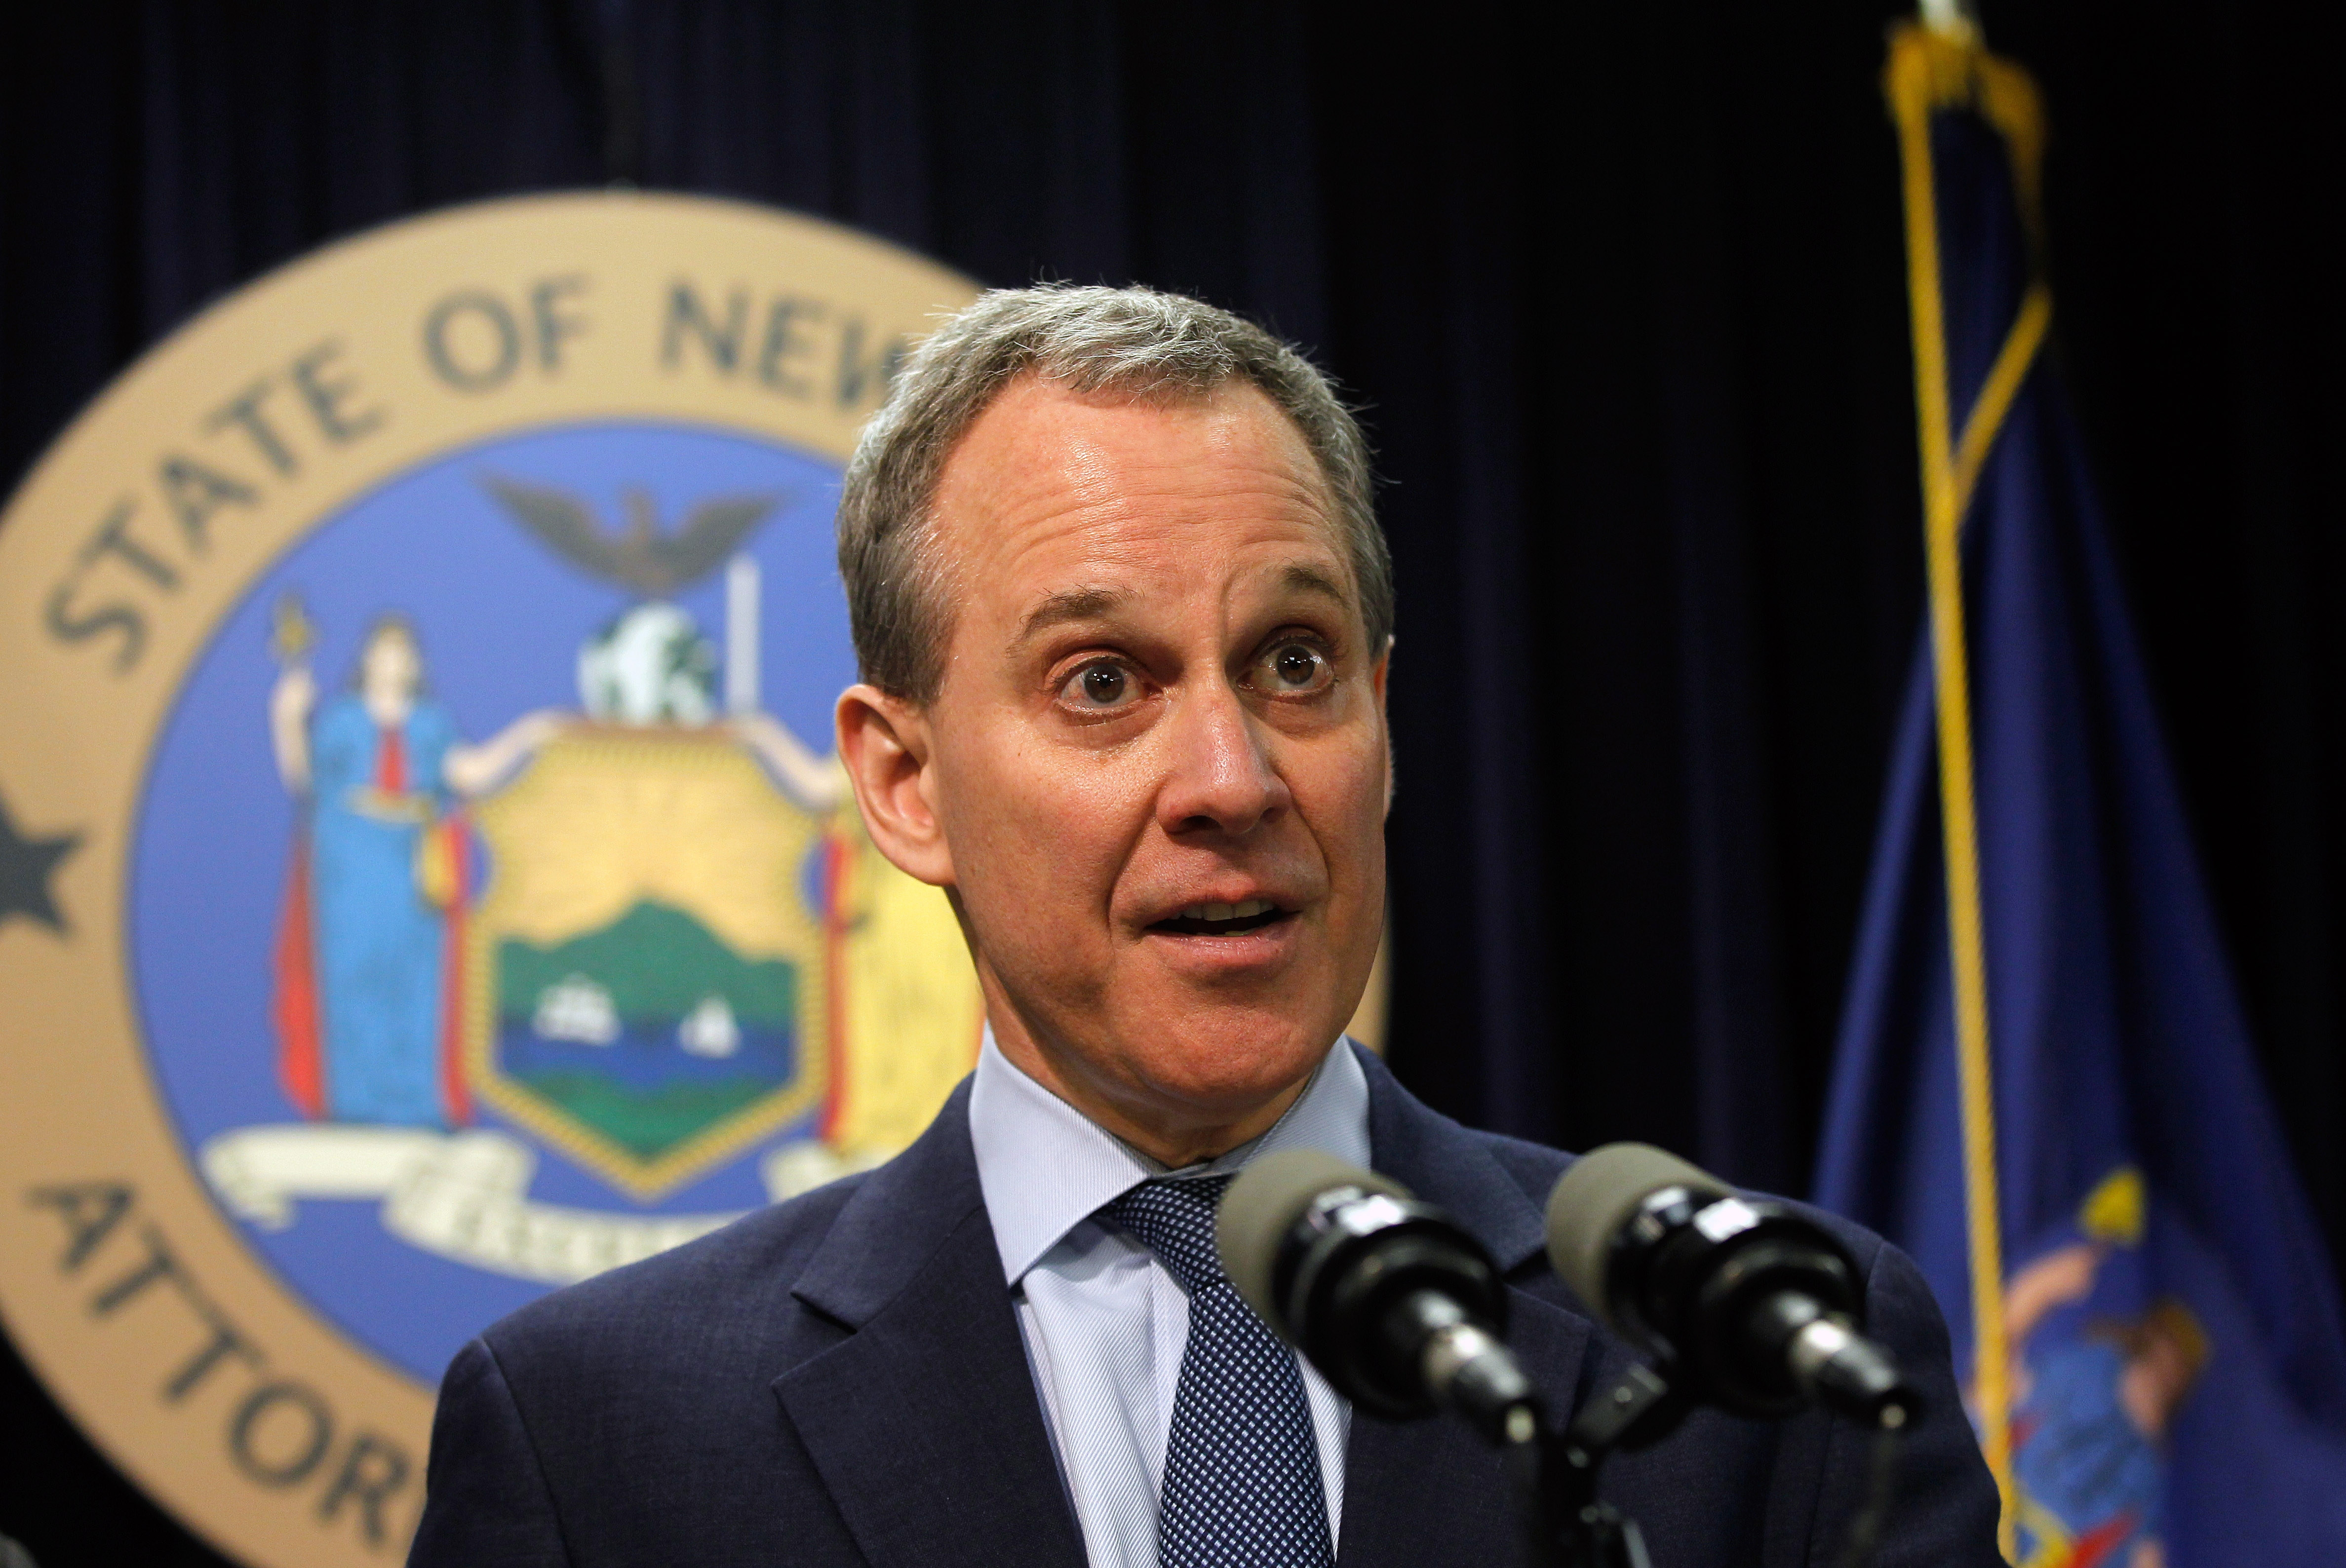 New York Attorney General Eric T. Schneiderman is probing WNY Progressive Caucus, a campaign fund connected to G. Stephen Pigeon. Records indicate that Pigeon gave more than $100,000 to the fund.